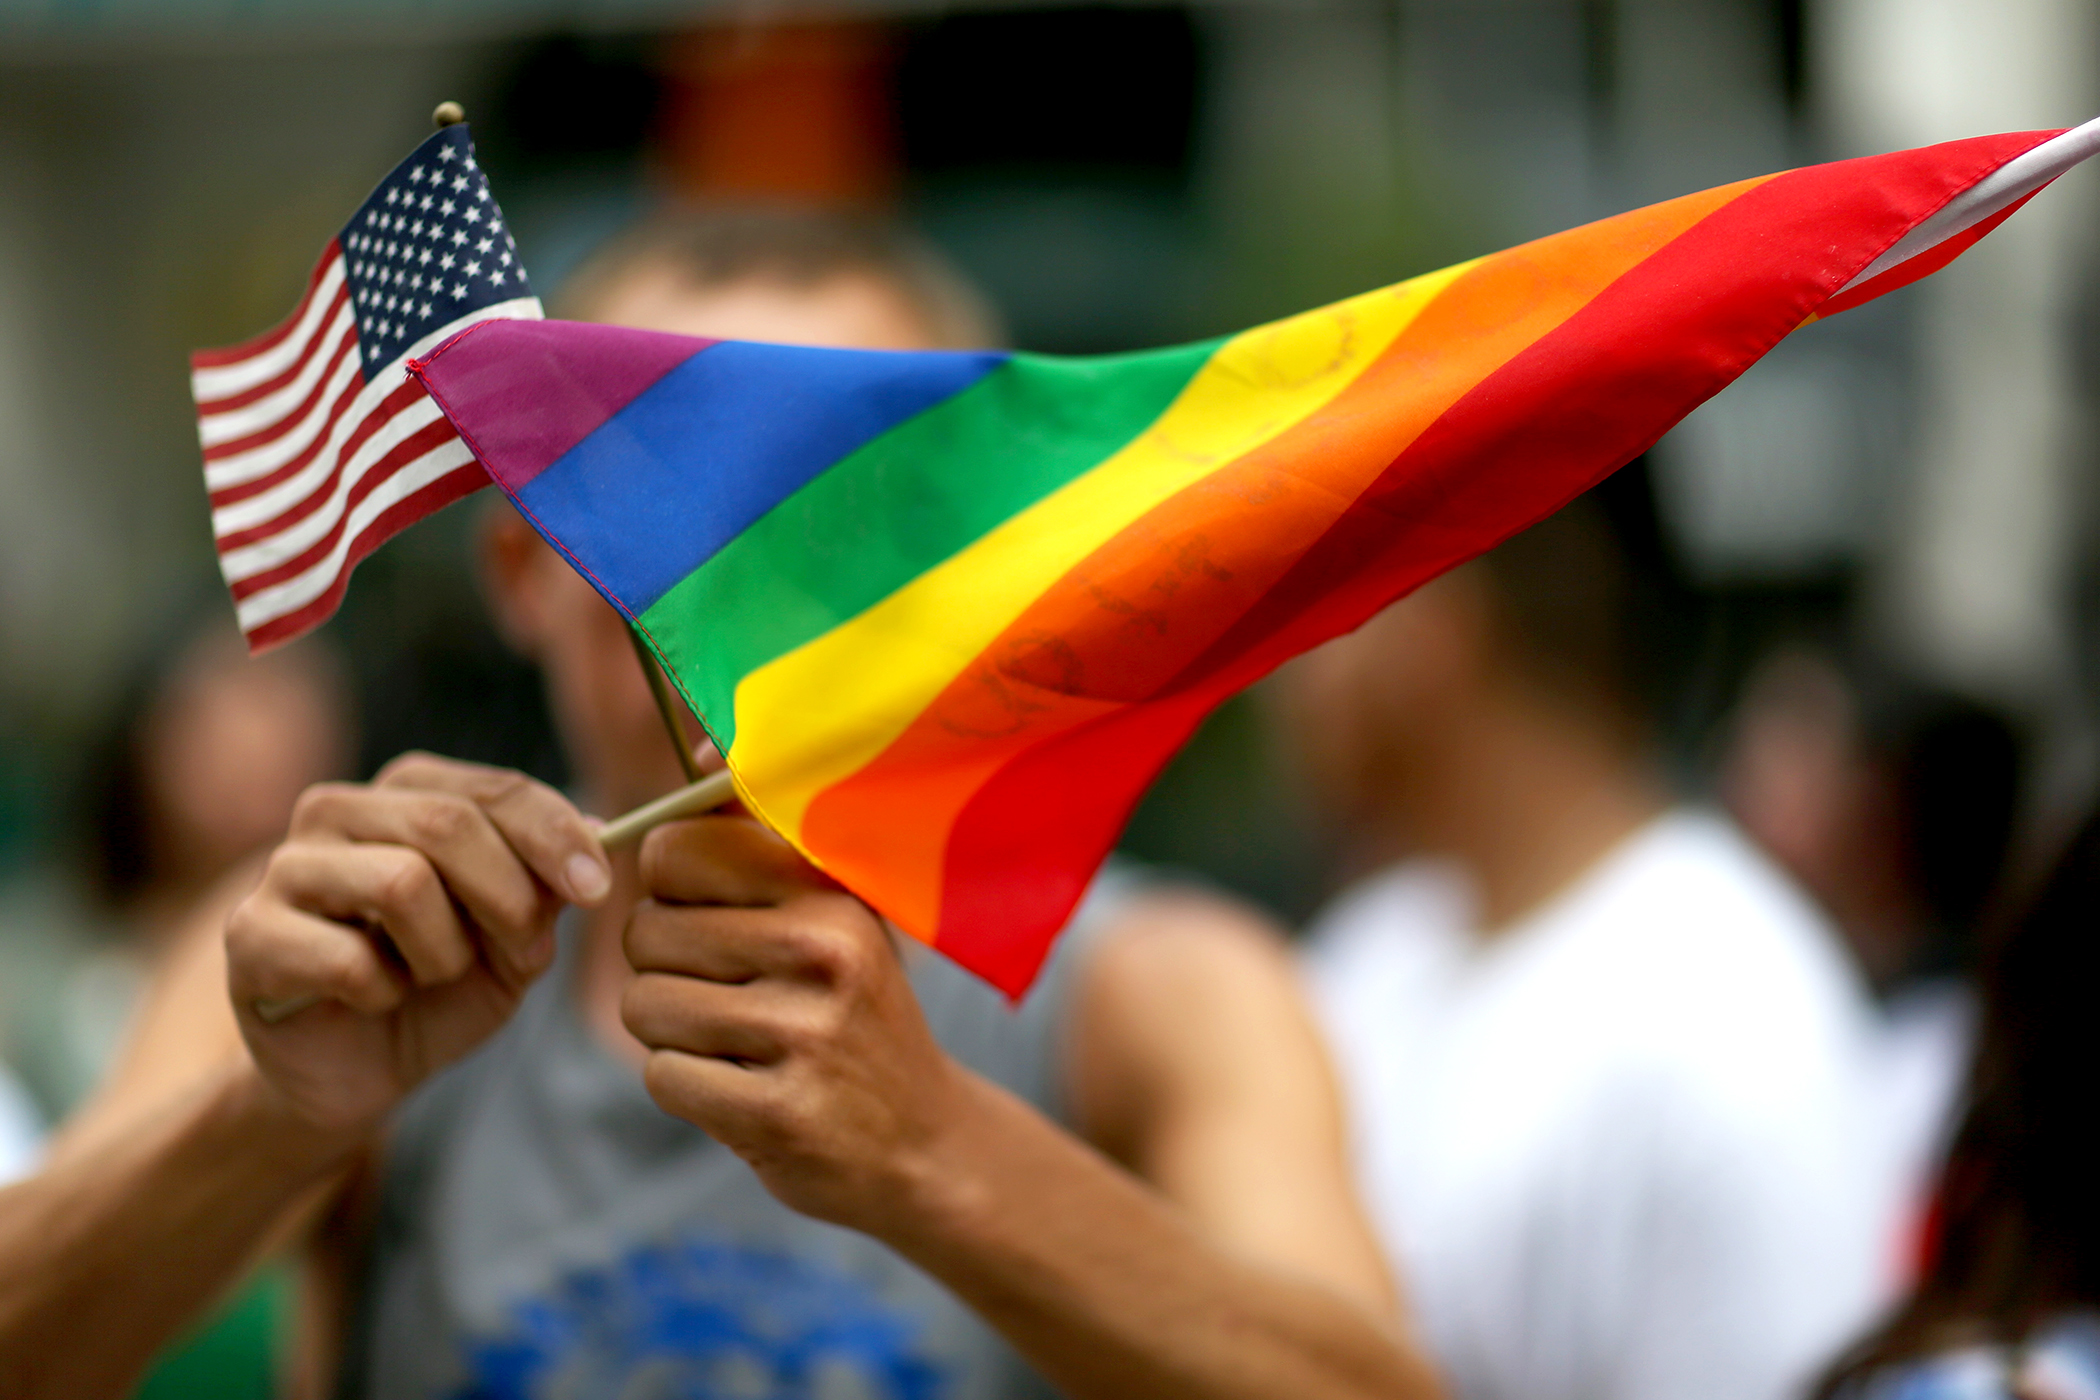 Federal judge strikes down Montana same-sex marriage ban